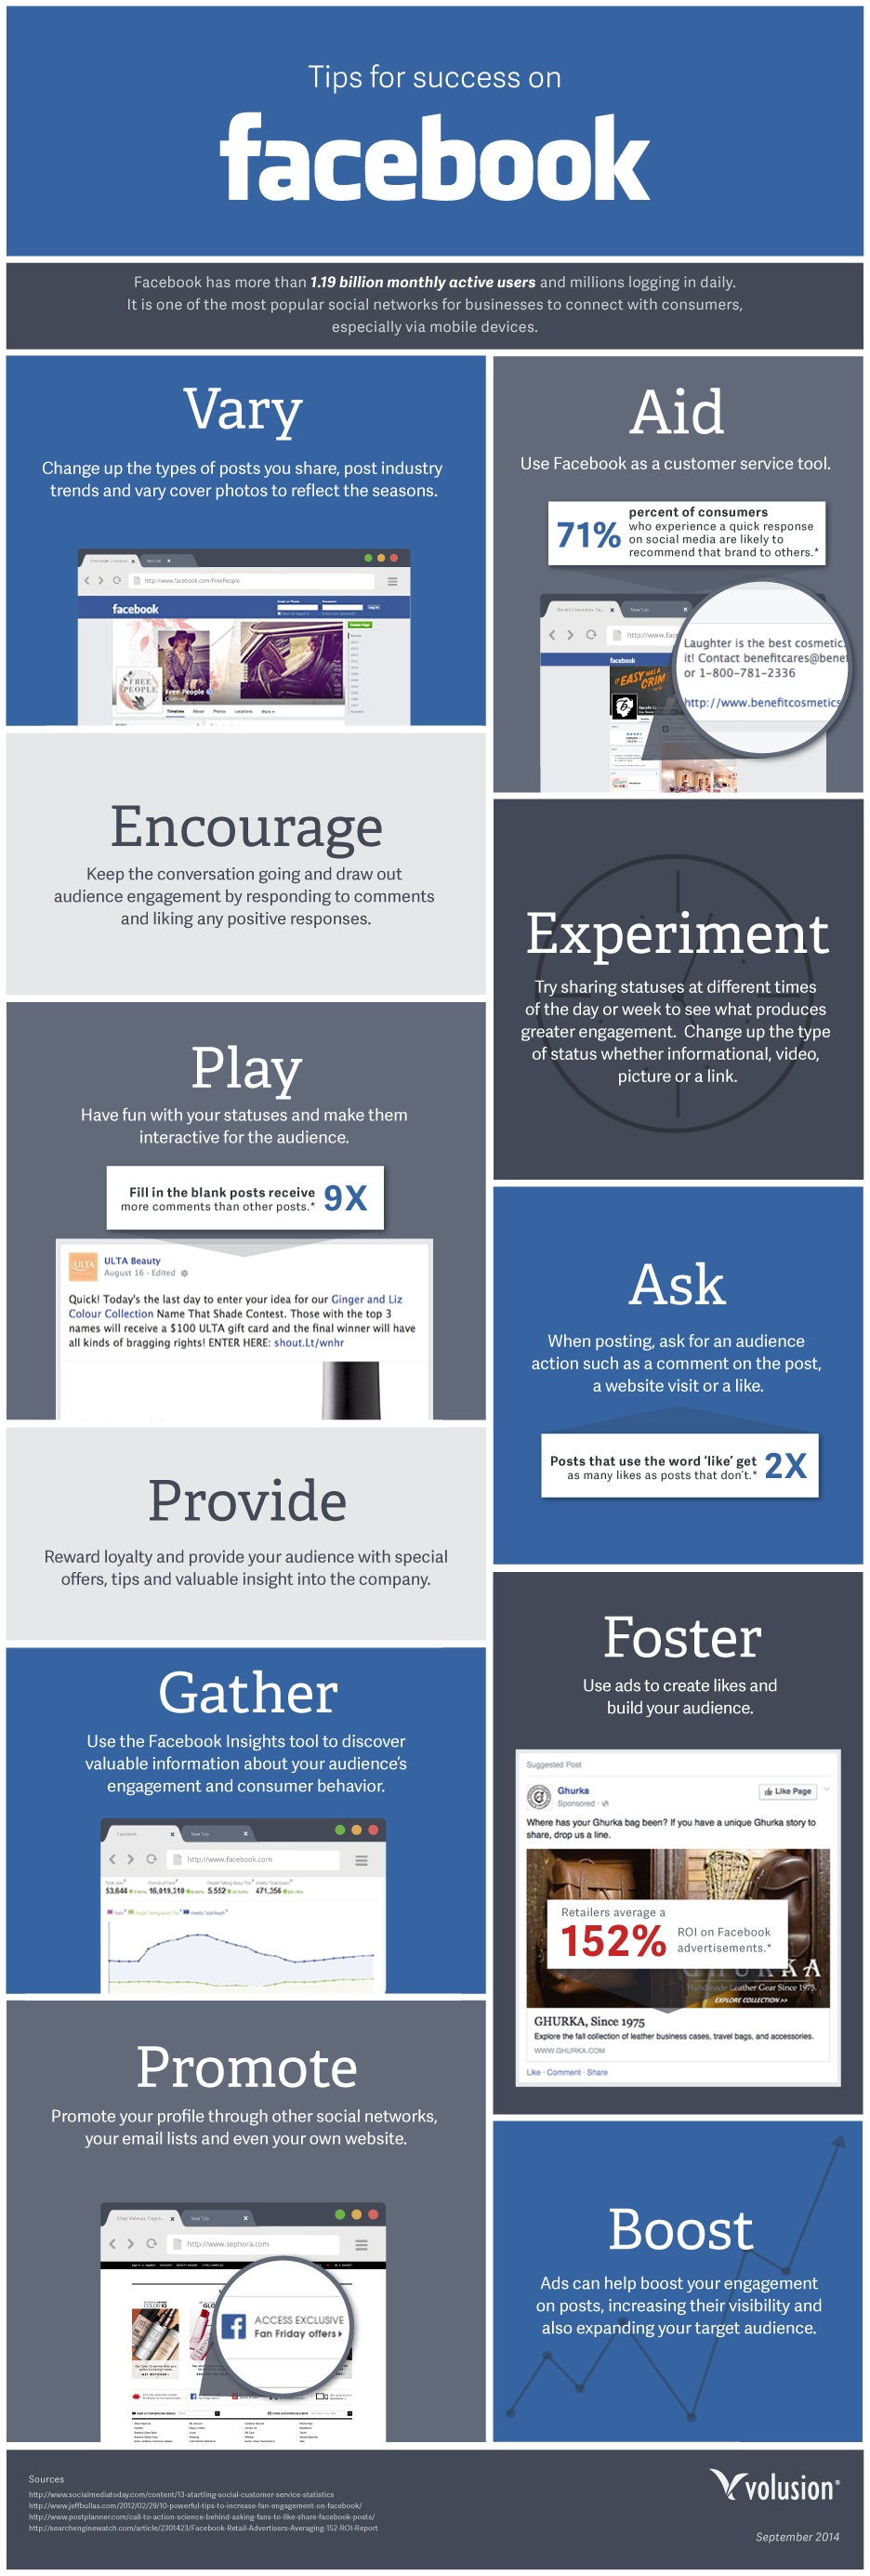 How to be successful in Facebook -Infographic